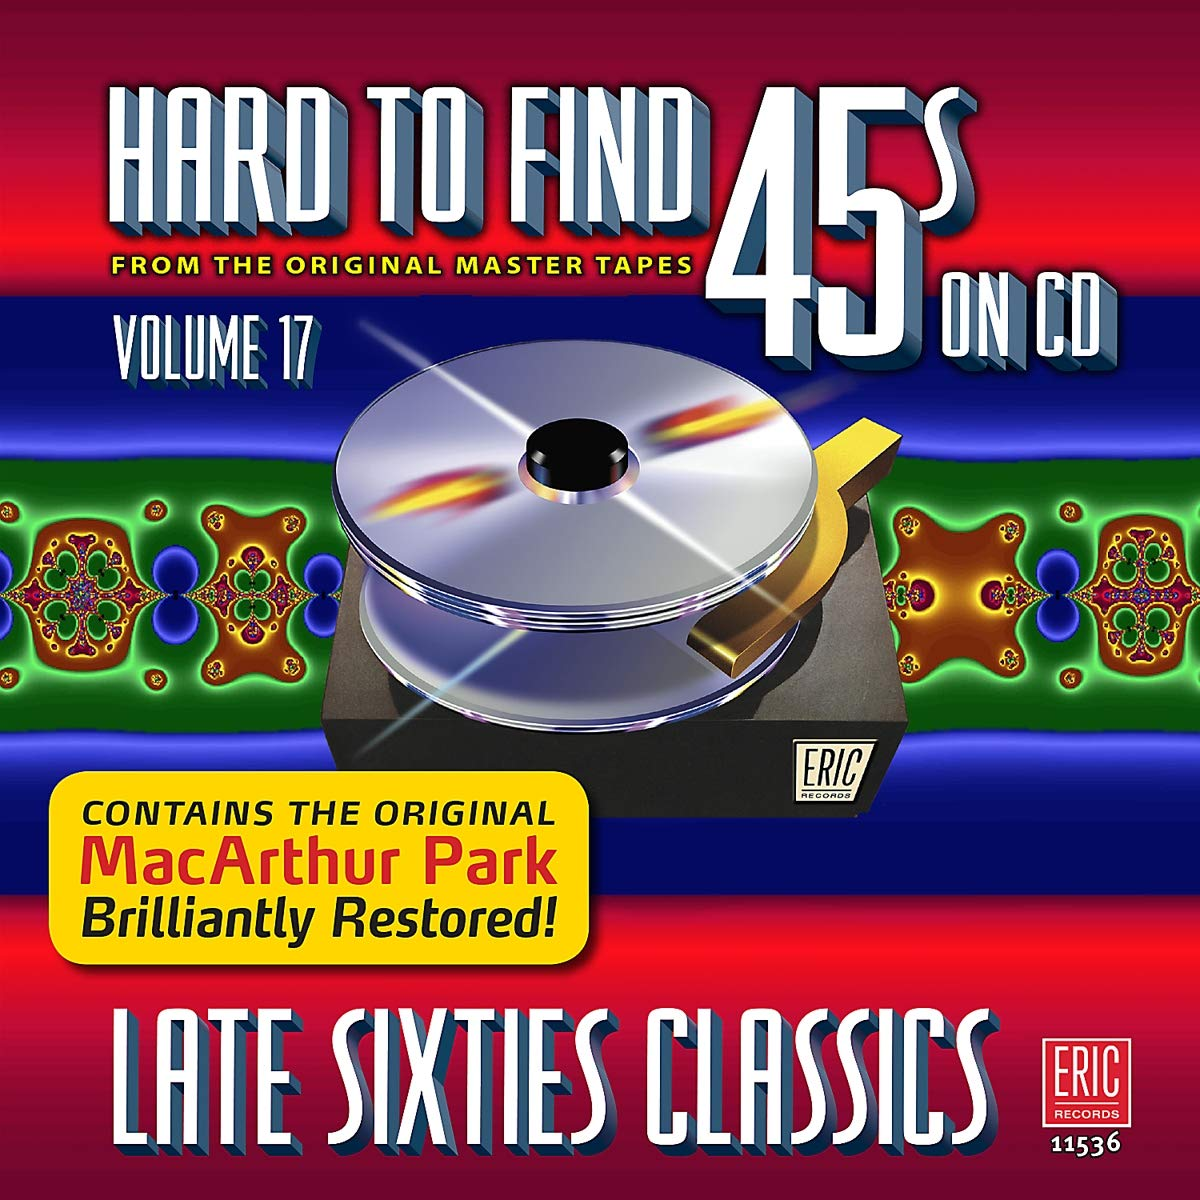 Hard To Find 45s On CD, Volume 17 - Late Sixties Classics